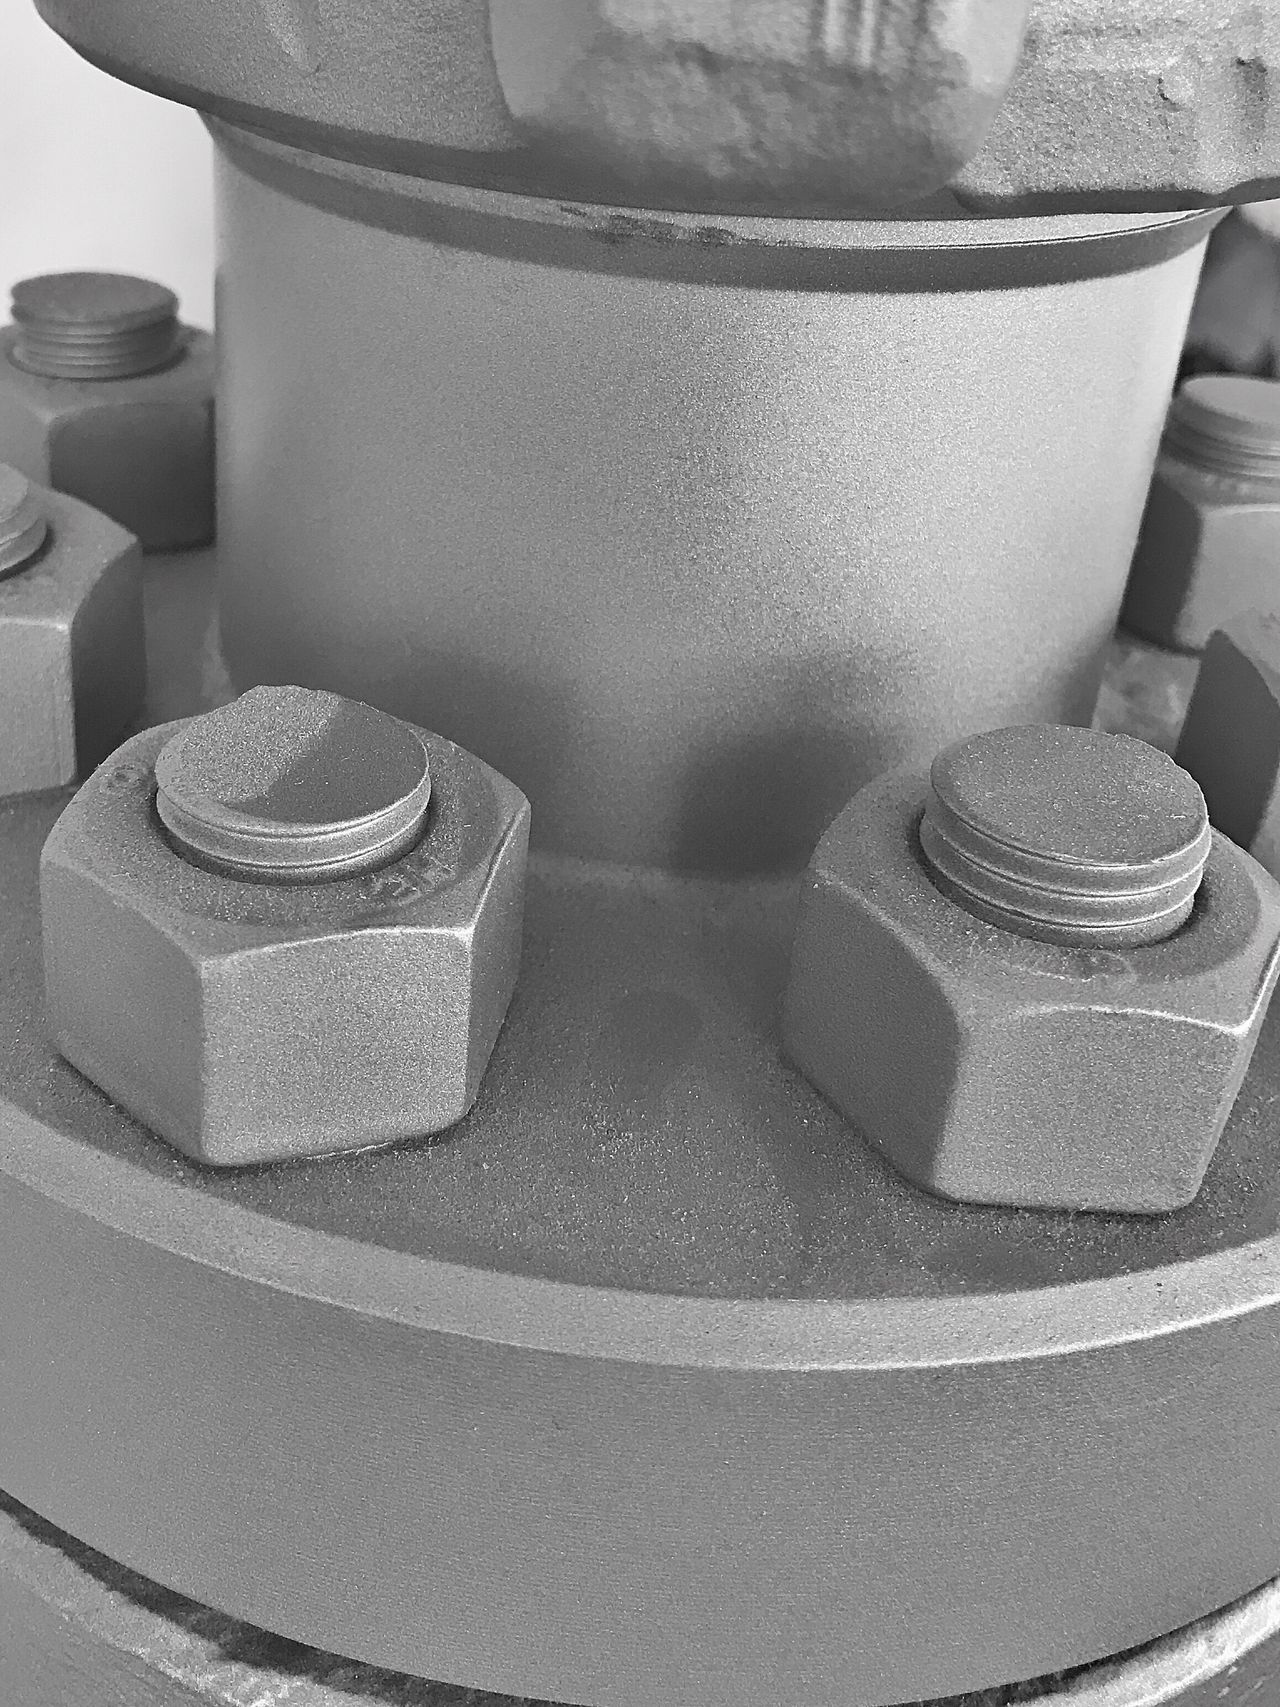 Pipe Nuts And Bolts Pipeline Close-up Industry Work Business